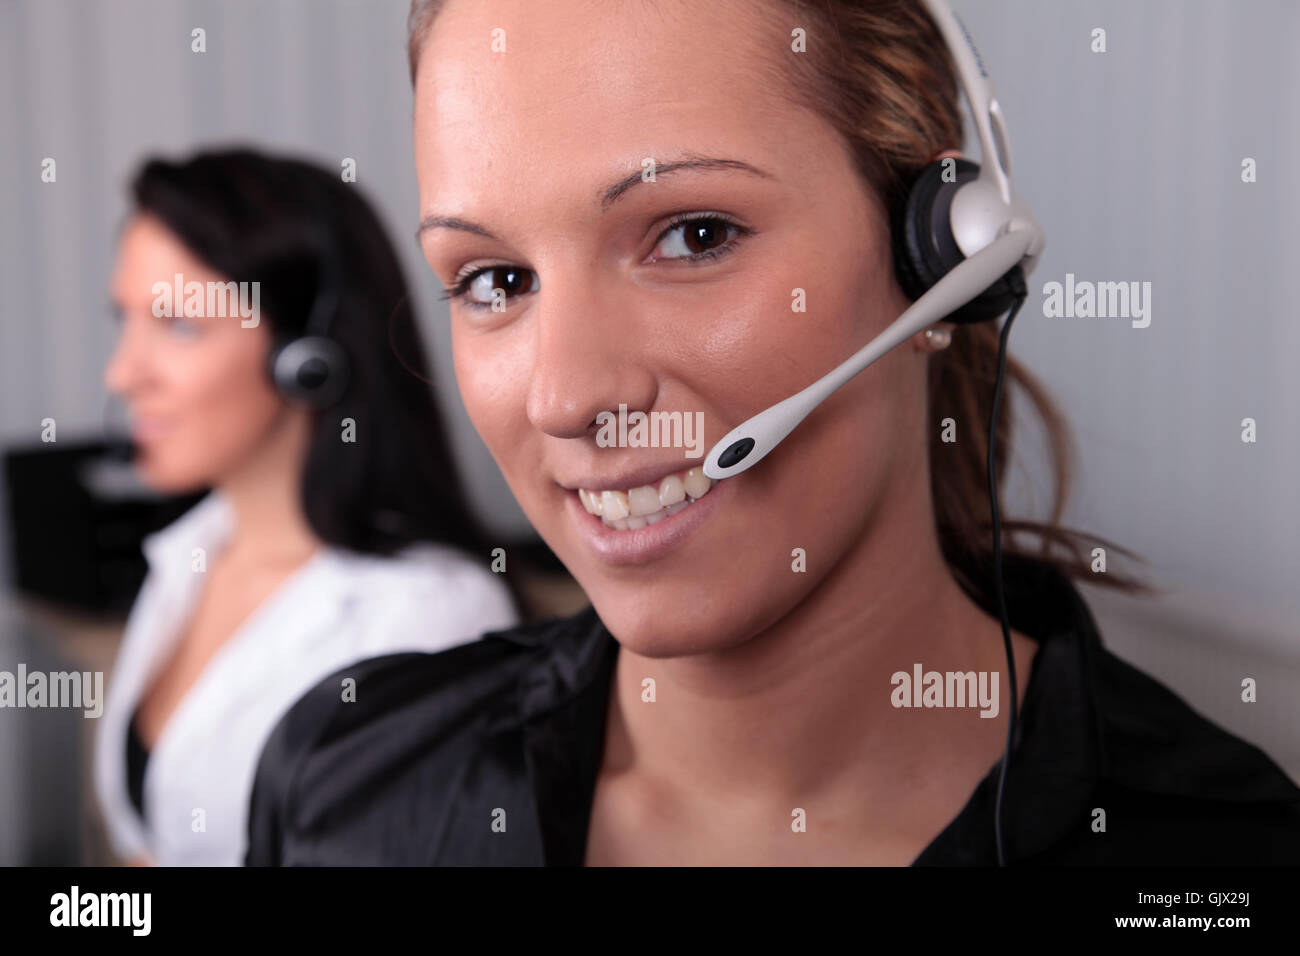 inbound outbound telephony - Stock Image